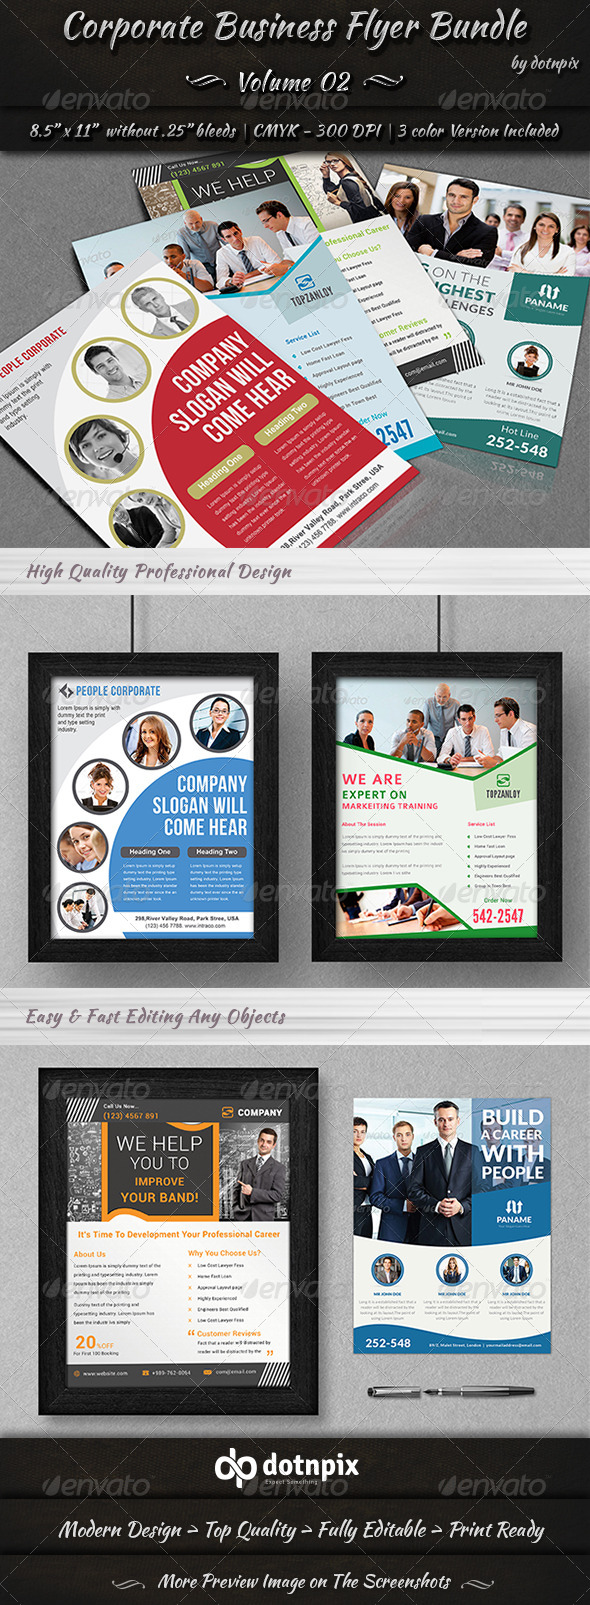 Corporate Business Flyer Bundle Volume 2